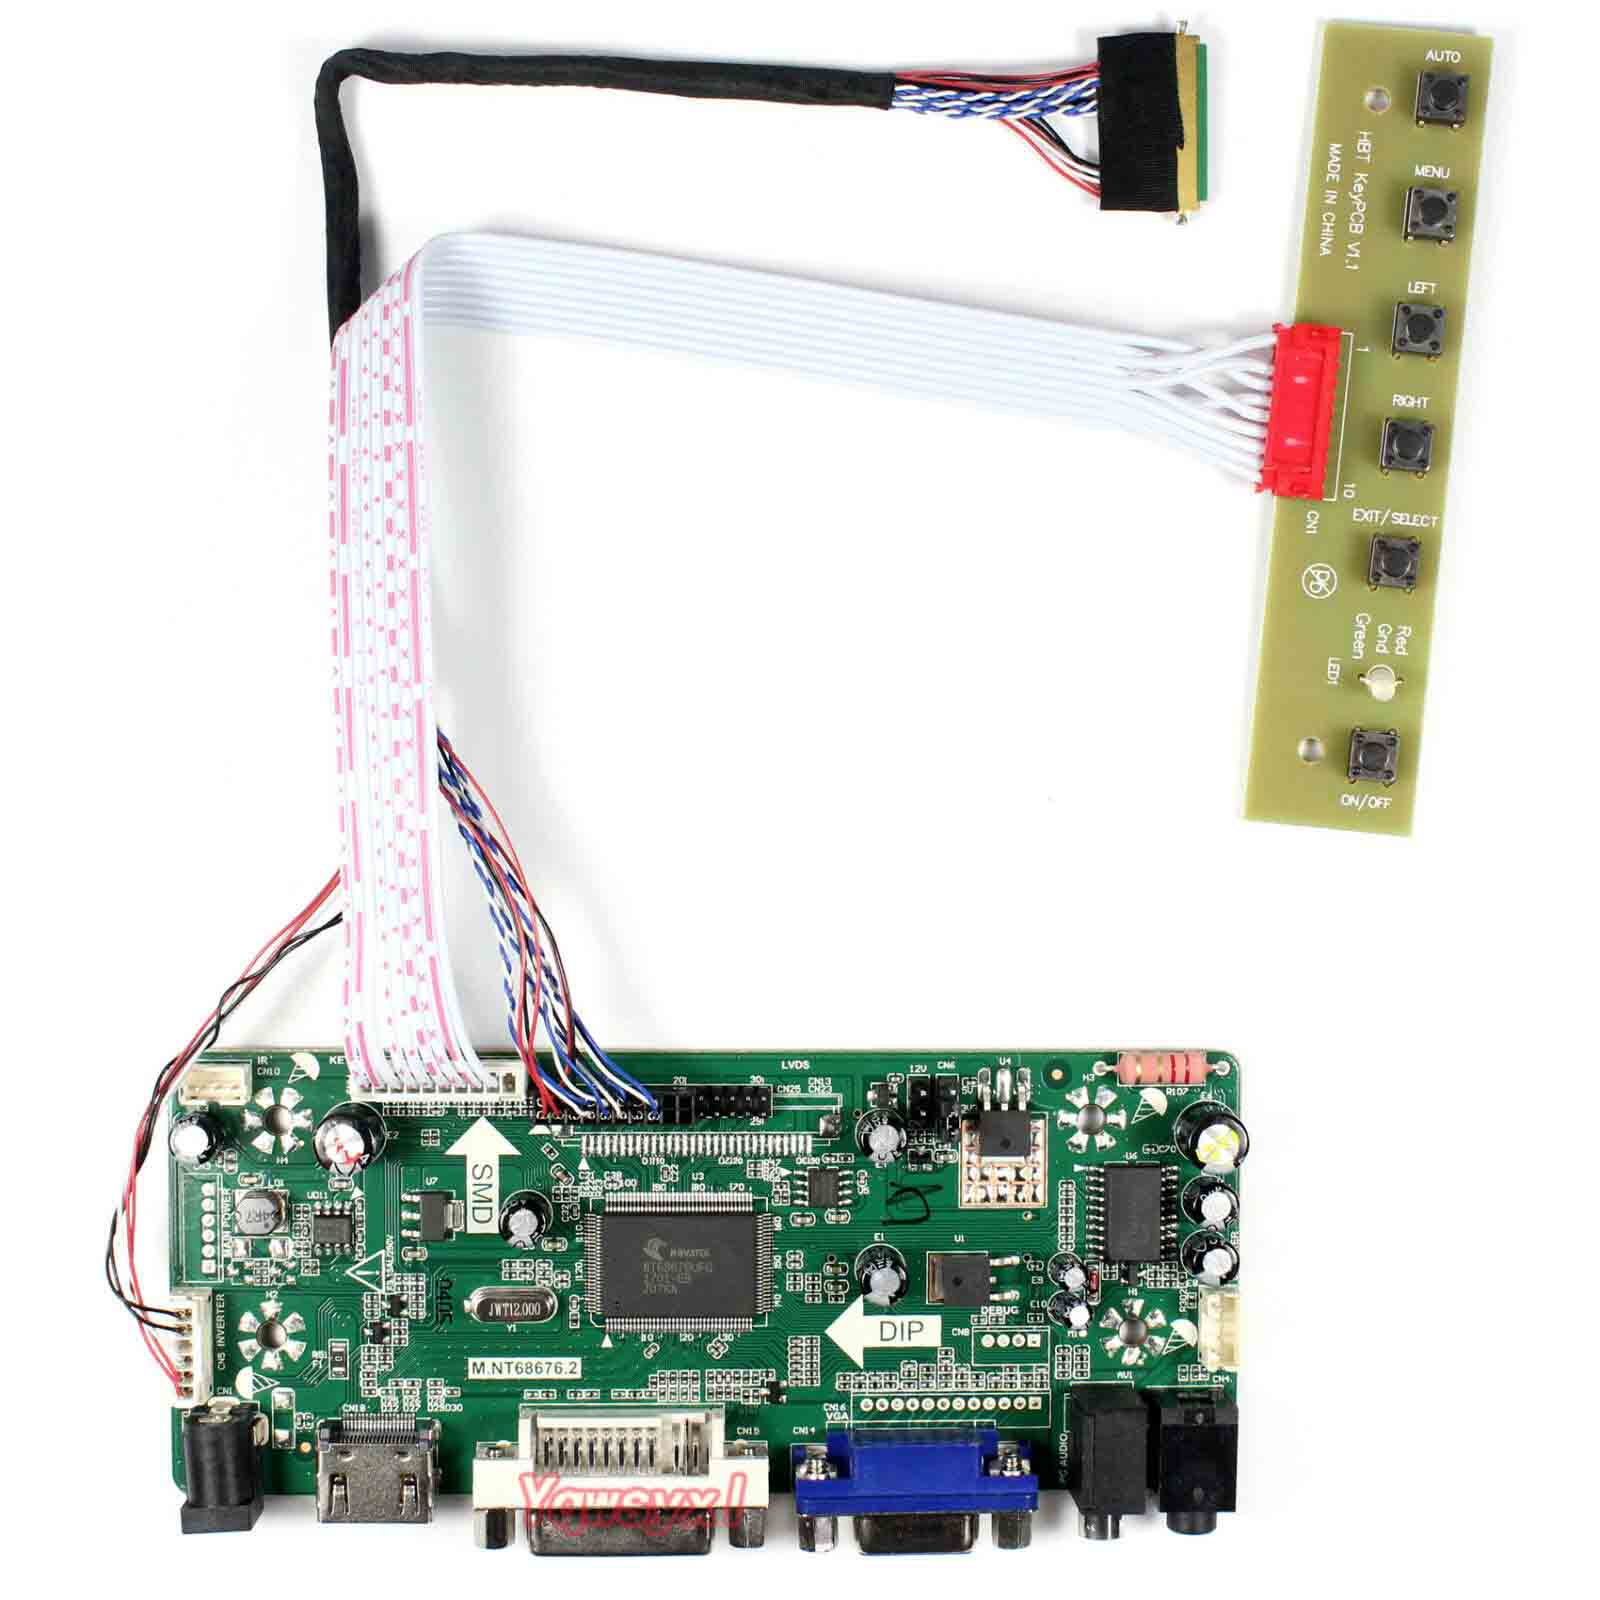 Yqwsyxl Control Board Monitor Kit For M101NWT2 R2/M101NWT2 R3 HDMI+DVI+VGA LCD LED  Screen Controller Board Driver